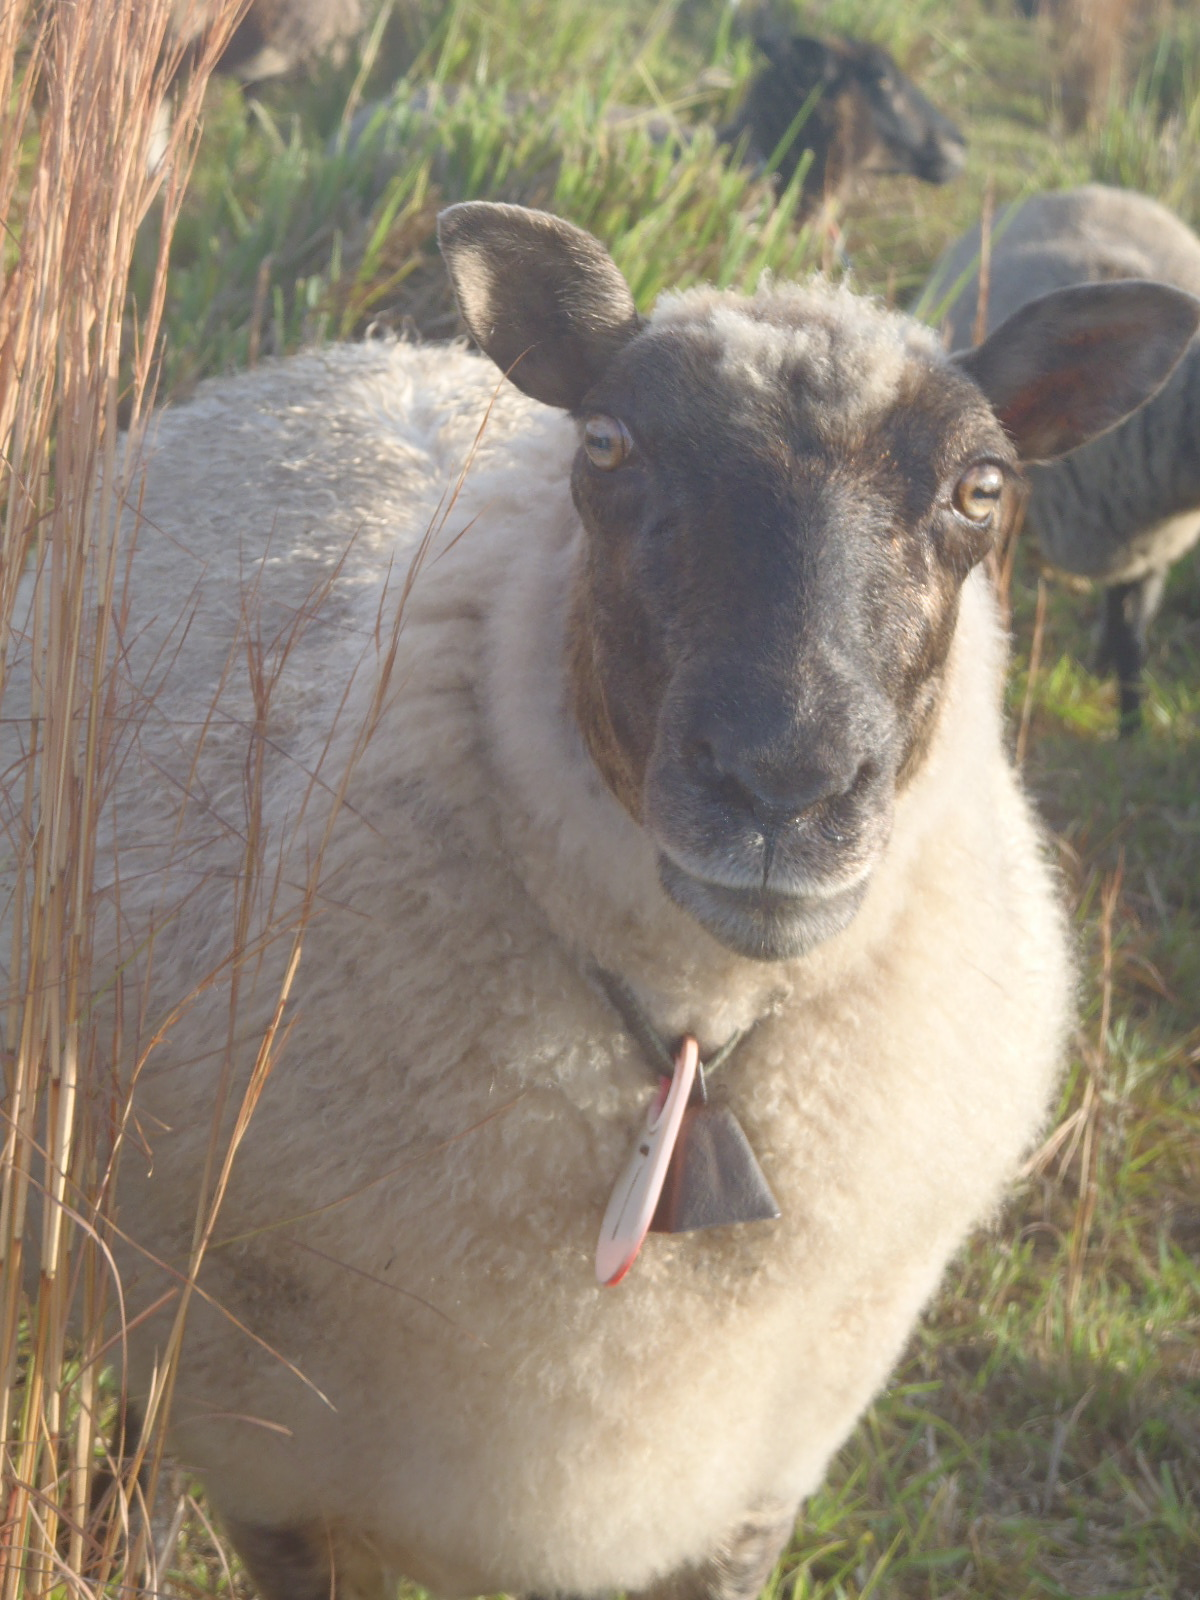 Sheep and wool crafts, click here.